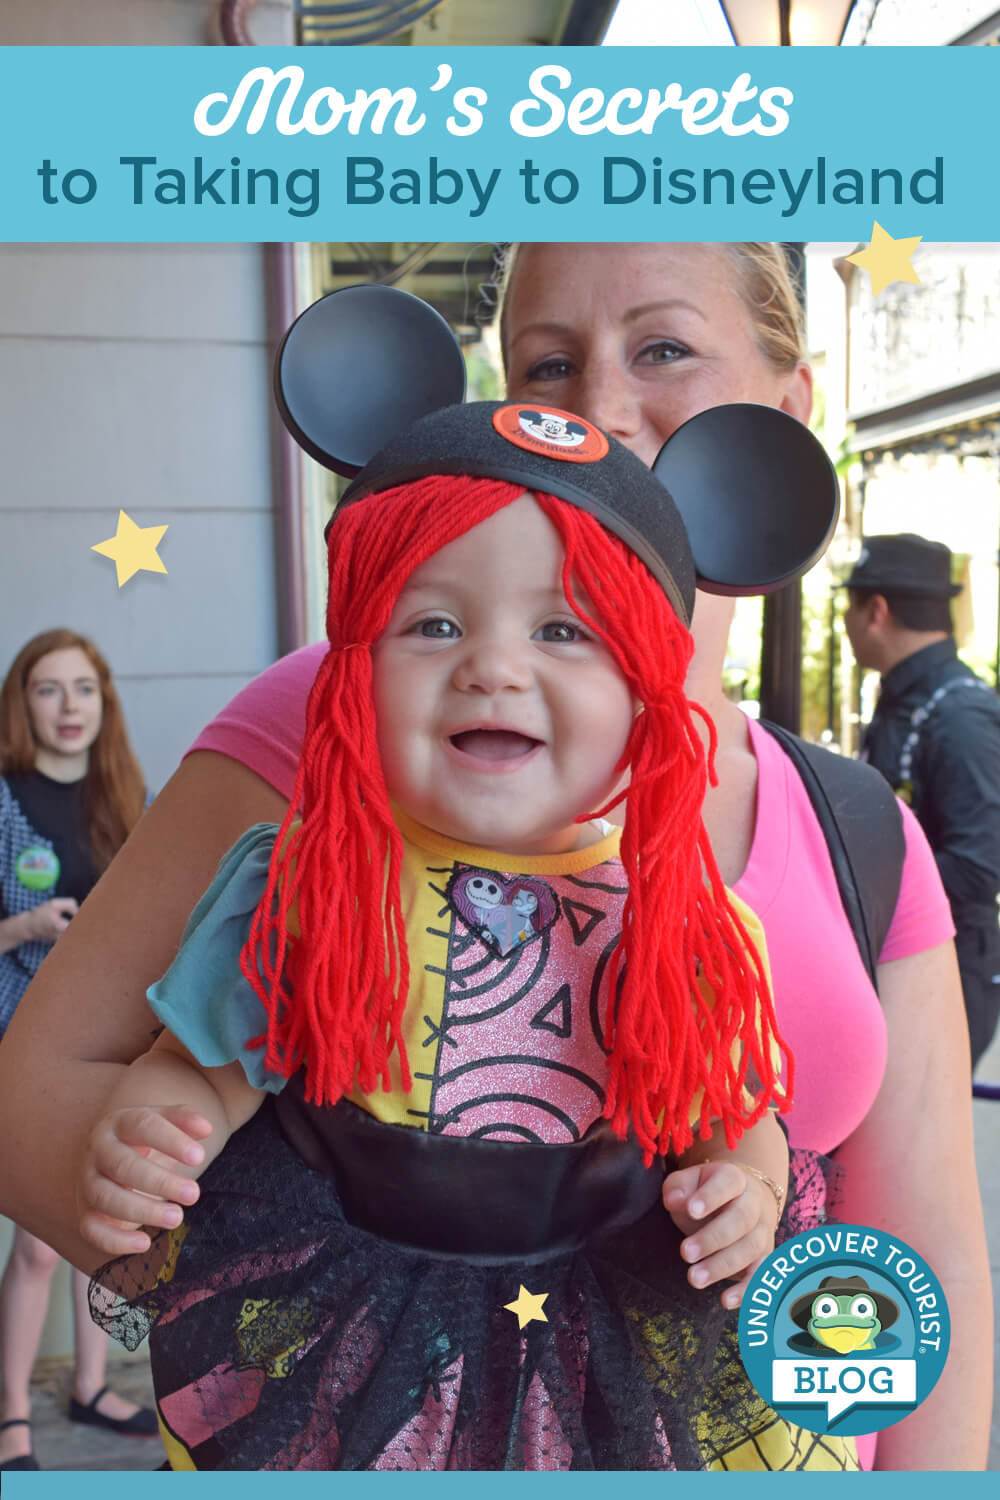 Moms Secrets For Going To Disneyland With A Baby